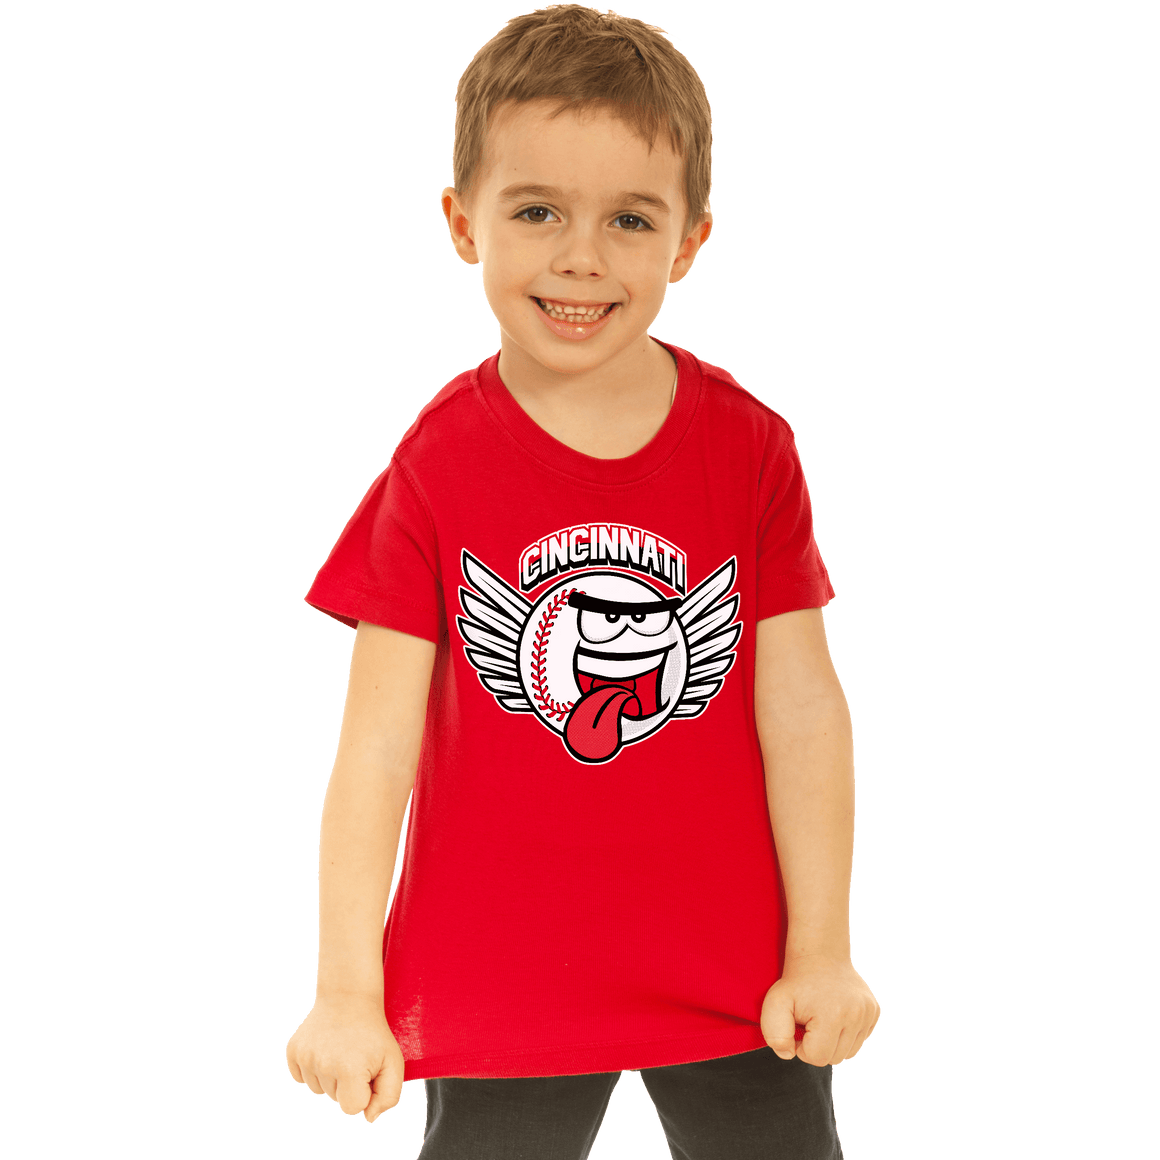 Baseball Tongue - Youth Sizes - Cincy Shirts